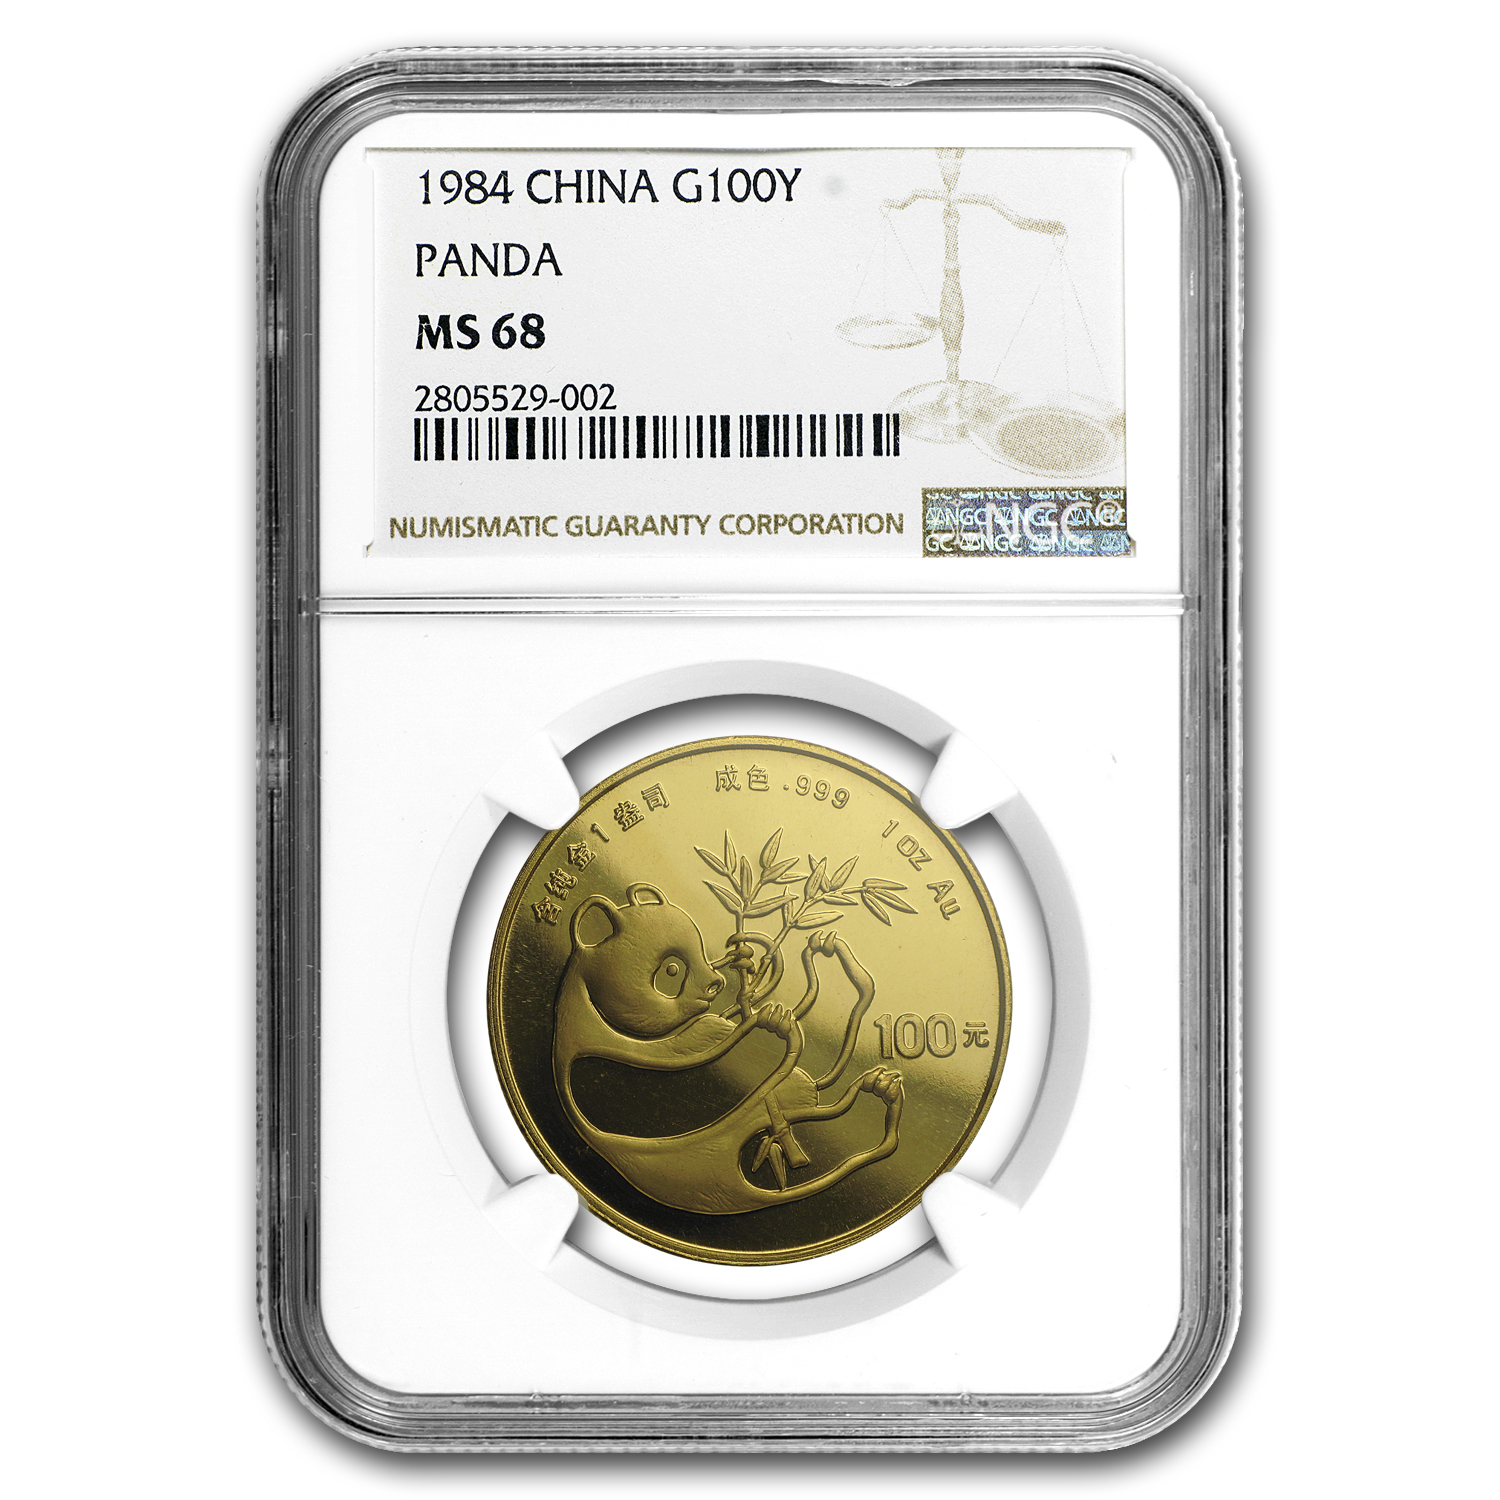 1984 China 1 oz Gold Panda MS-68 NGC